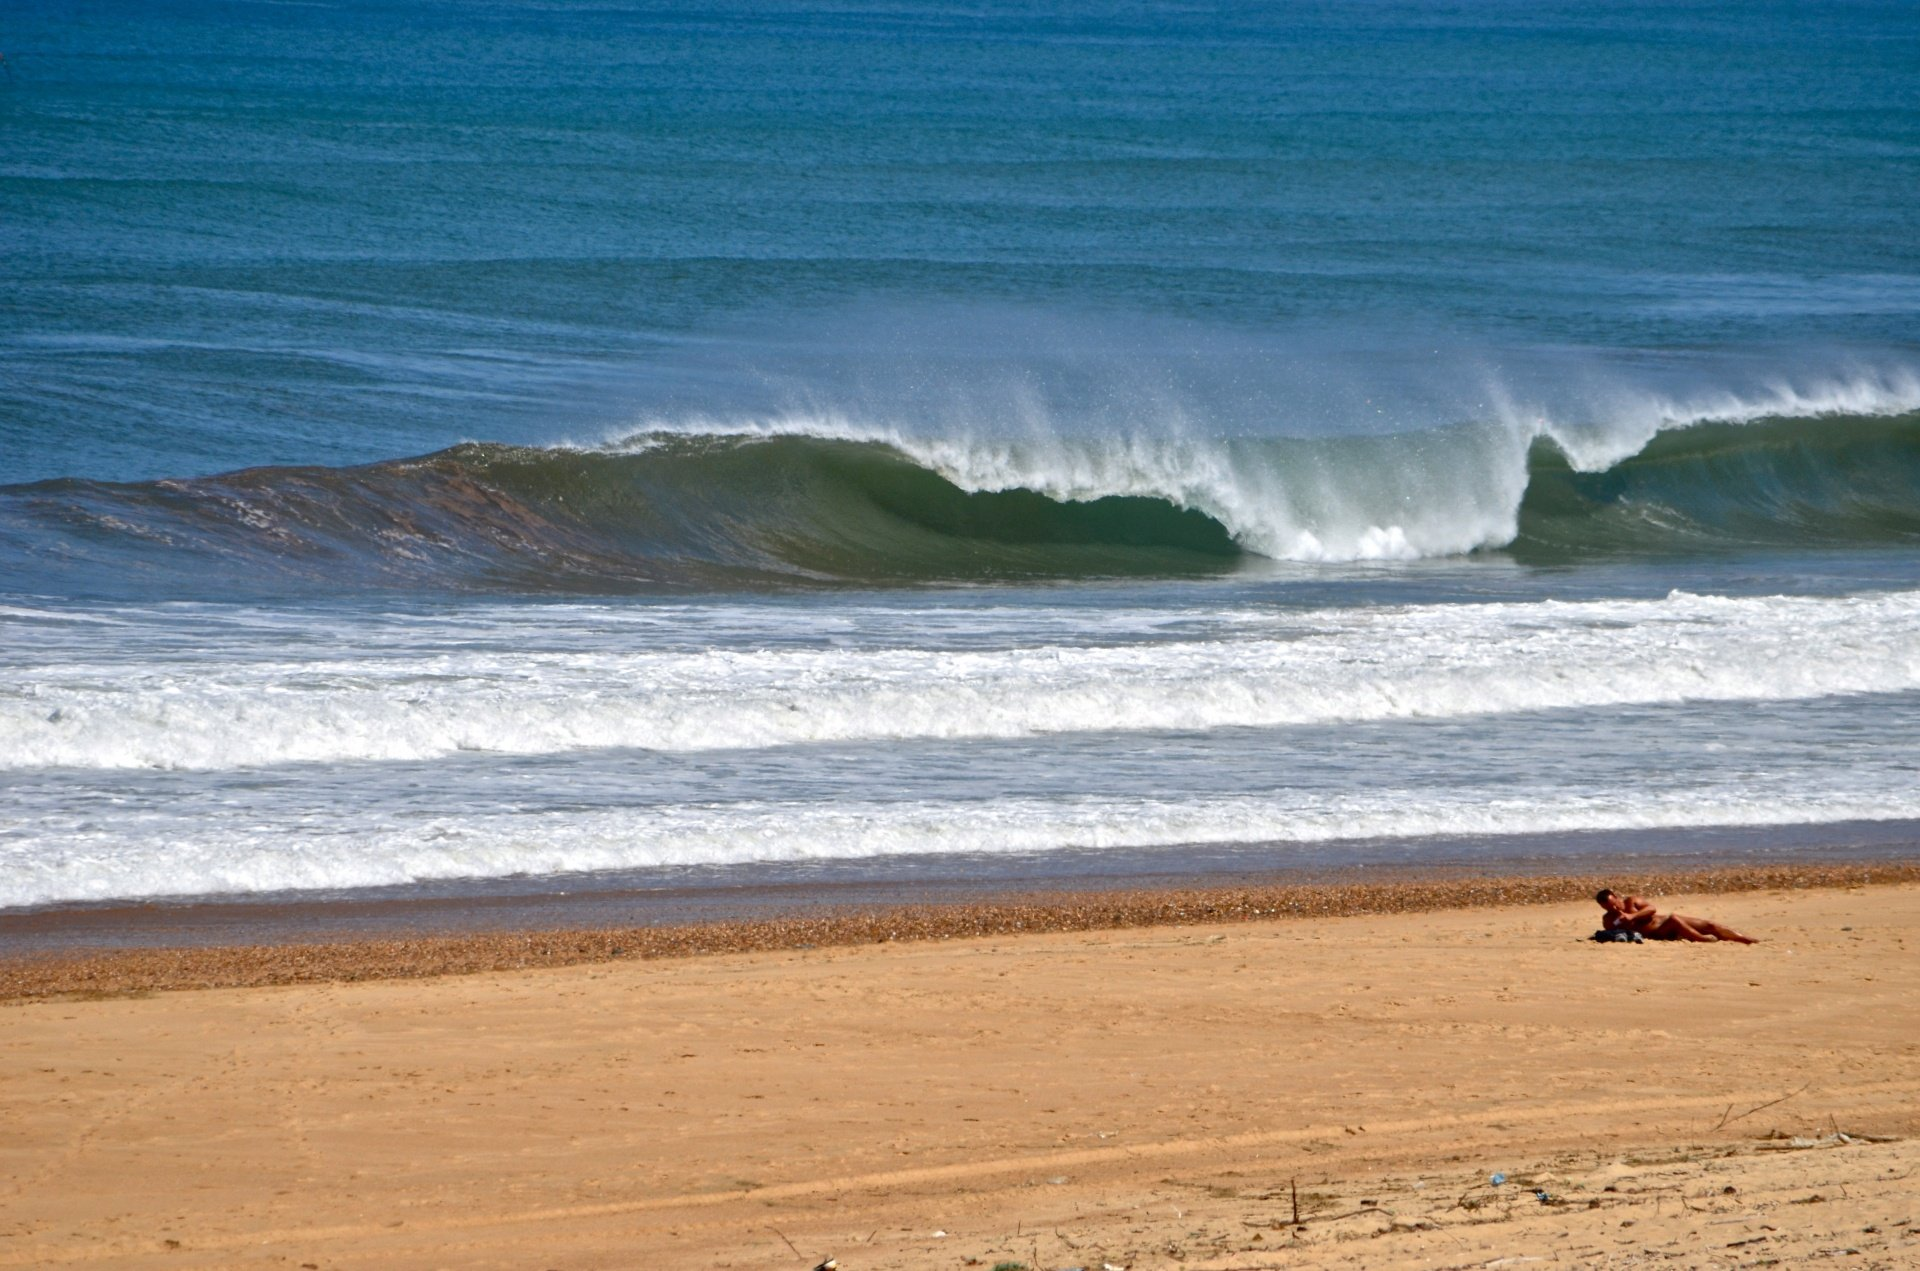 Sascha Borrey's photo of Capbreton (La Piste/VVF)